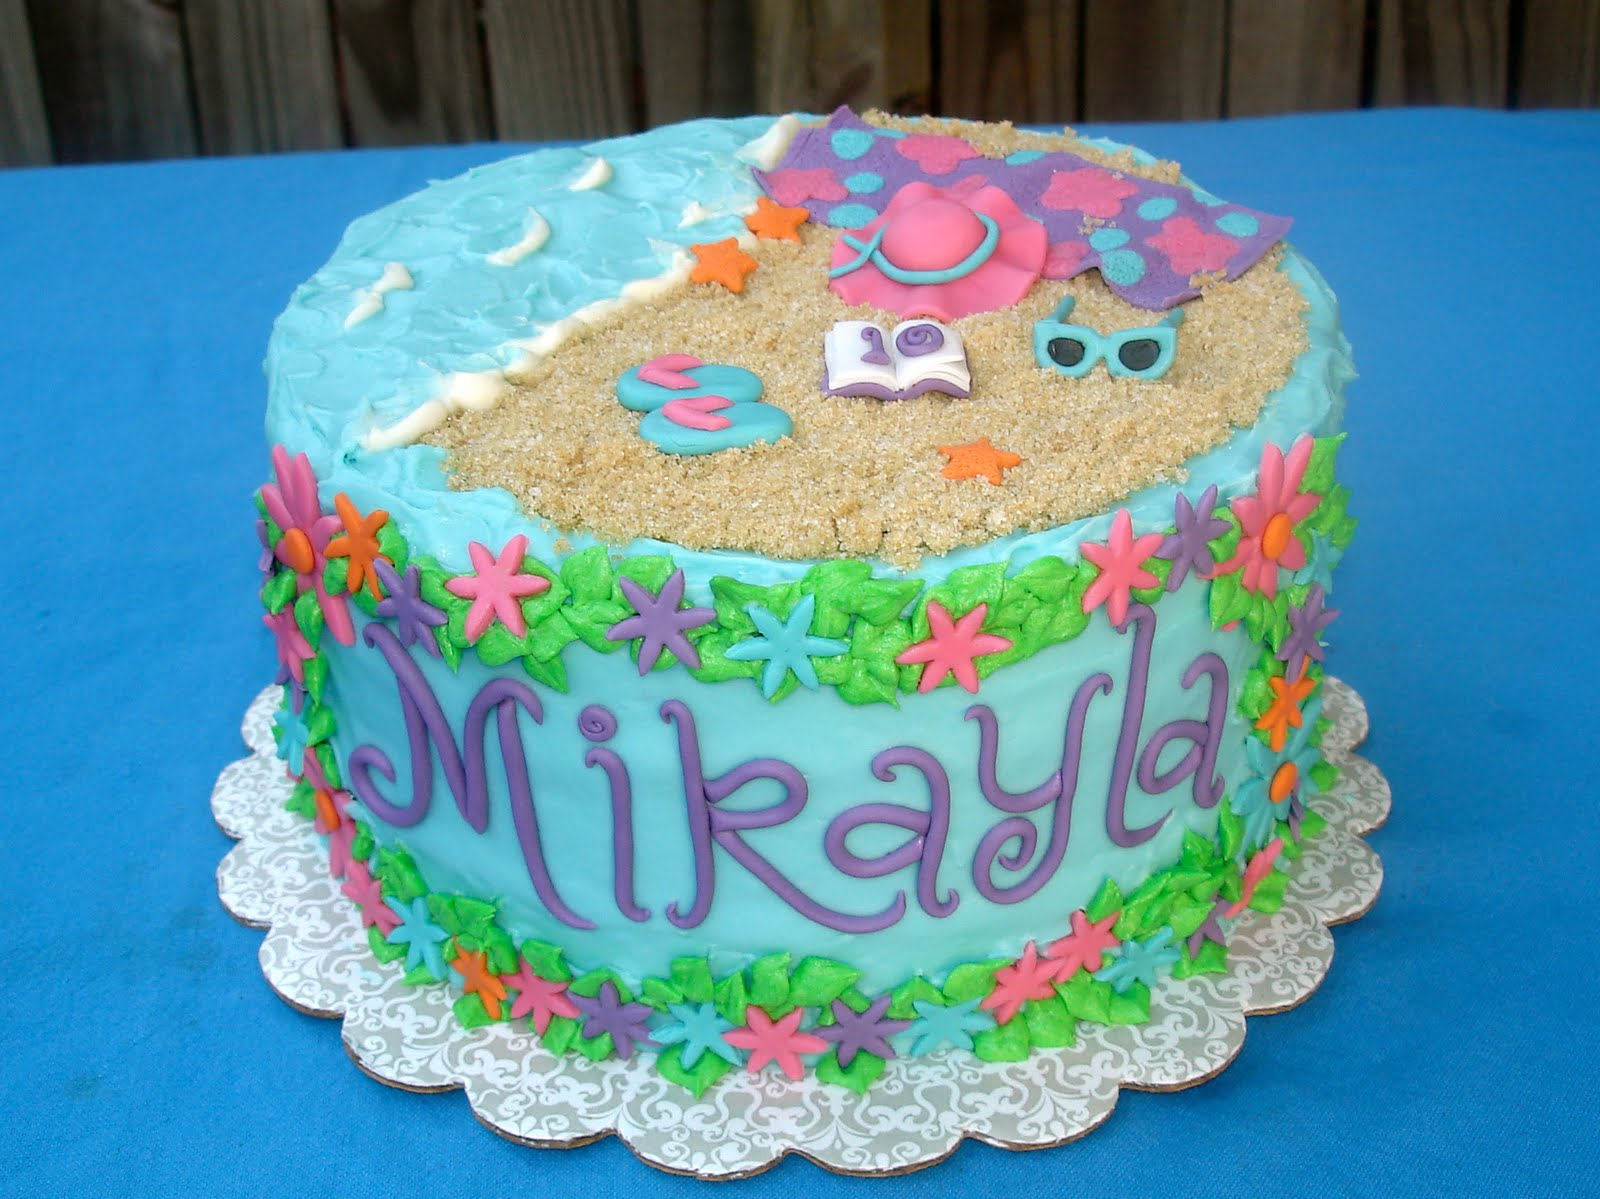 8 28 10 10th Birthday Swim Party Love That She Was In My Cake Decorating Class This Summer And Then Wanted A From Her Teacher